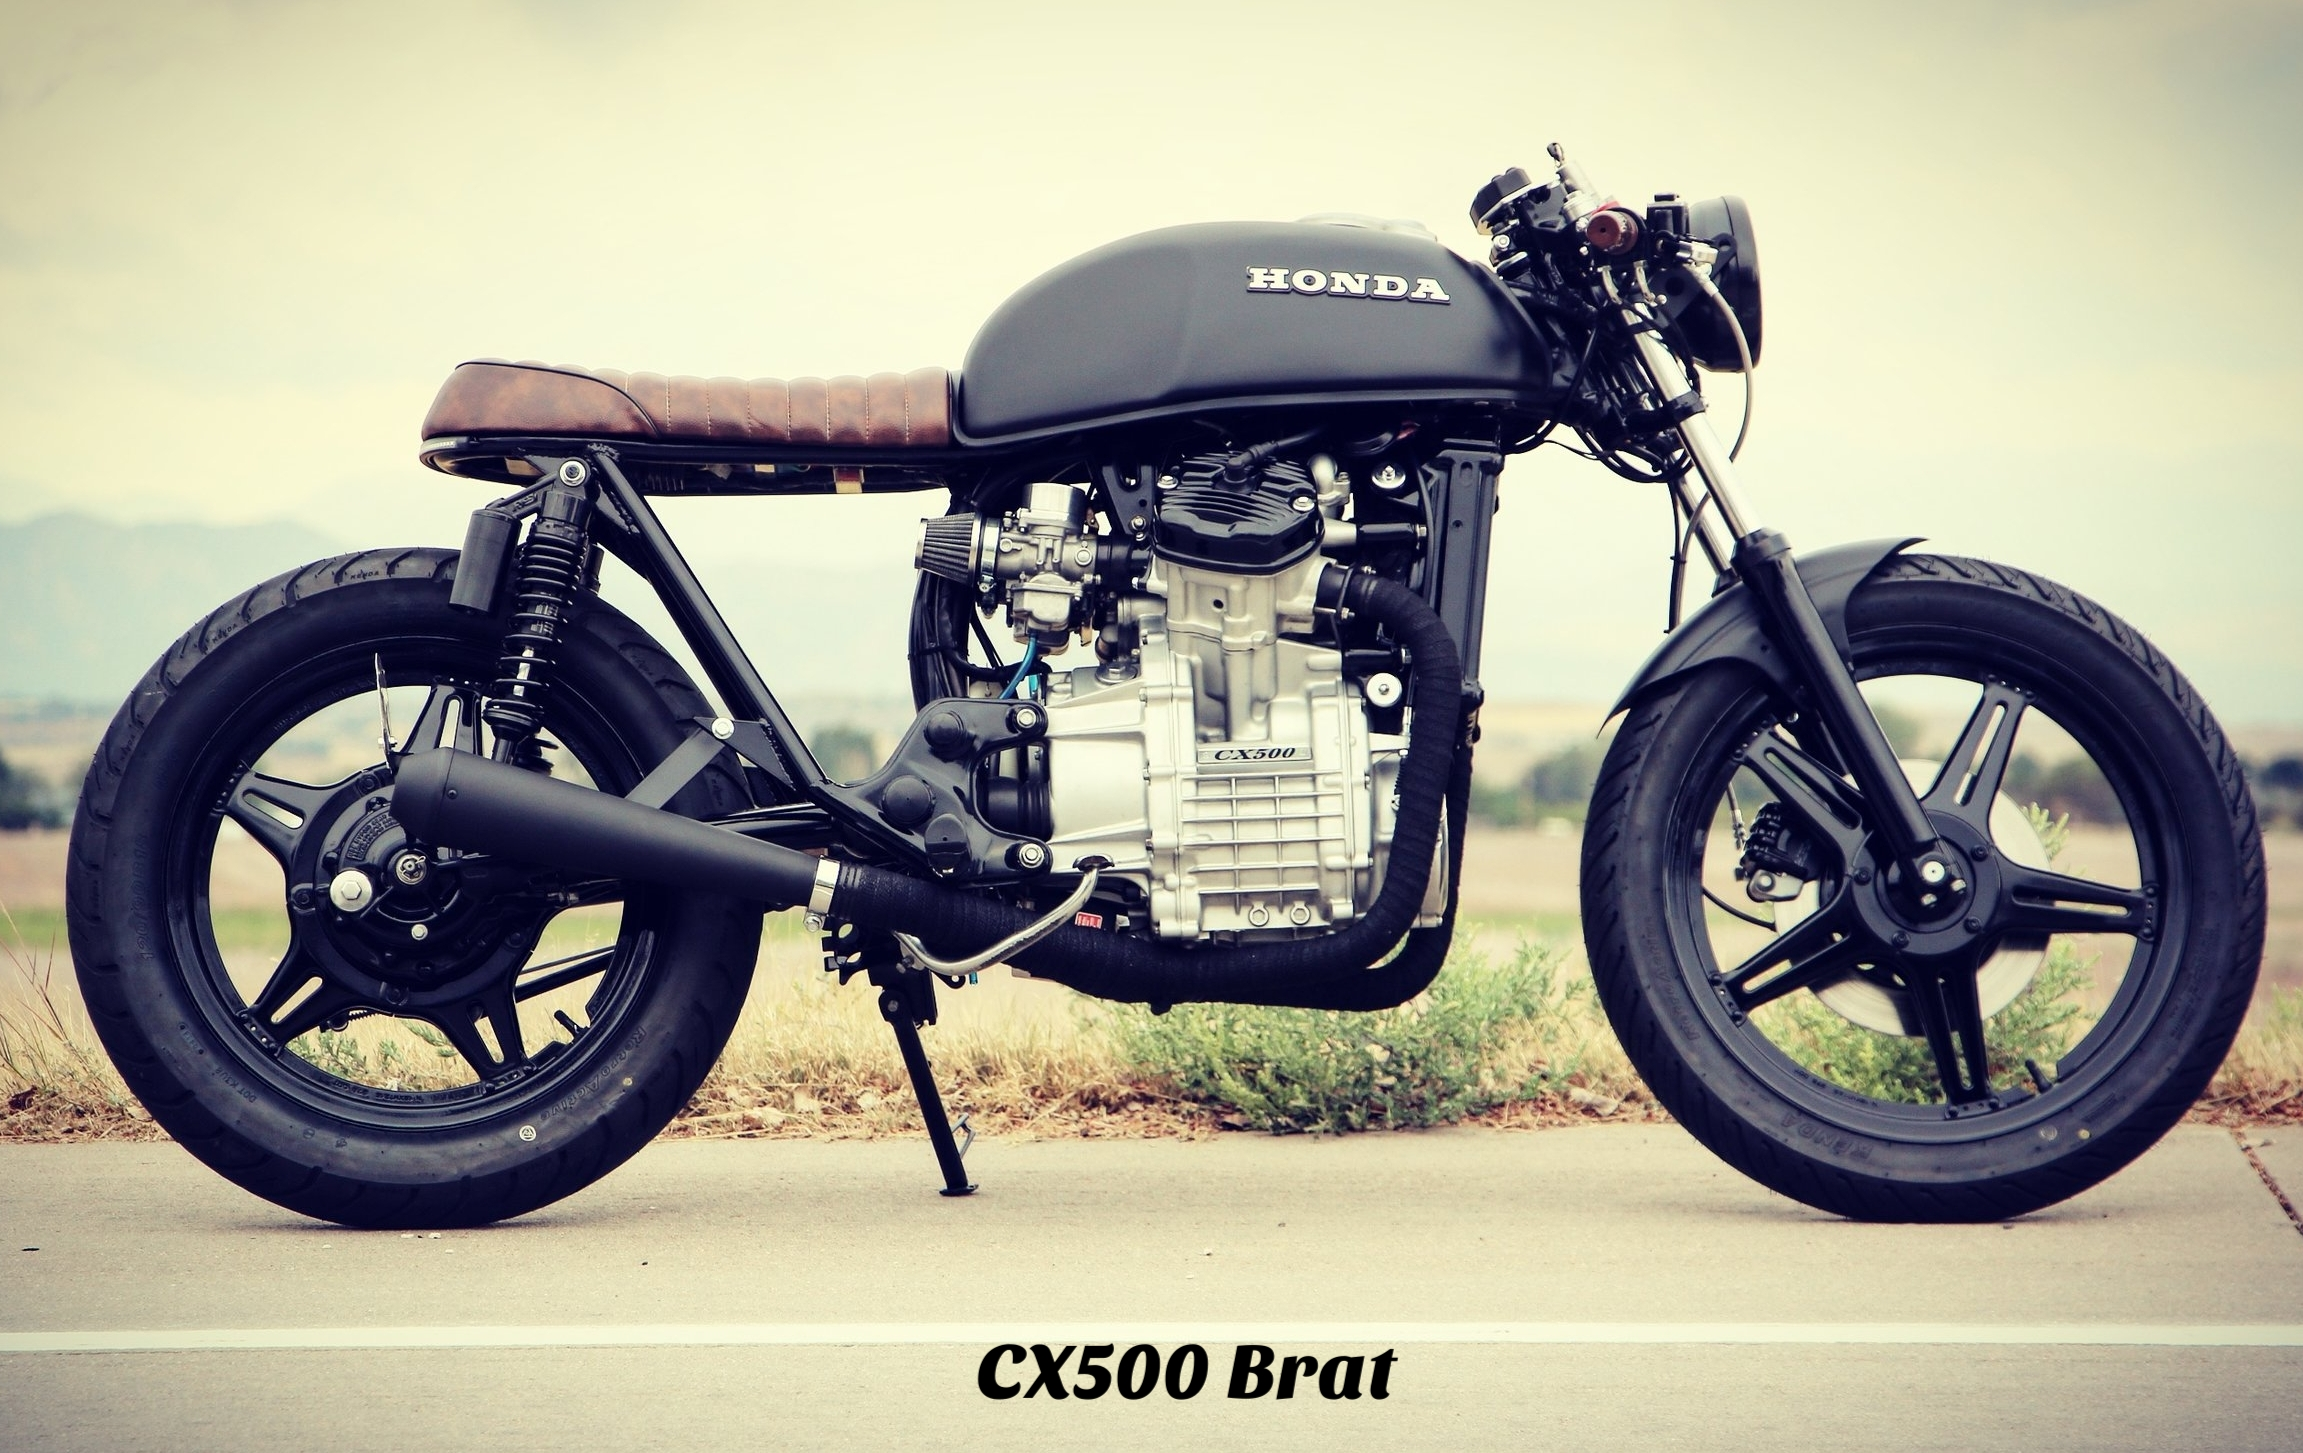 CX500 brat cafe racer